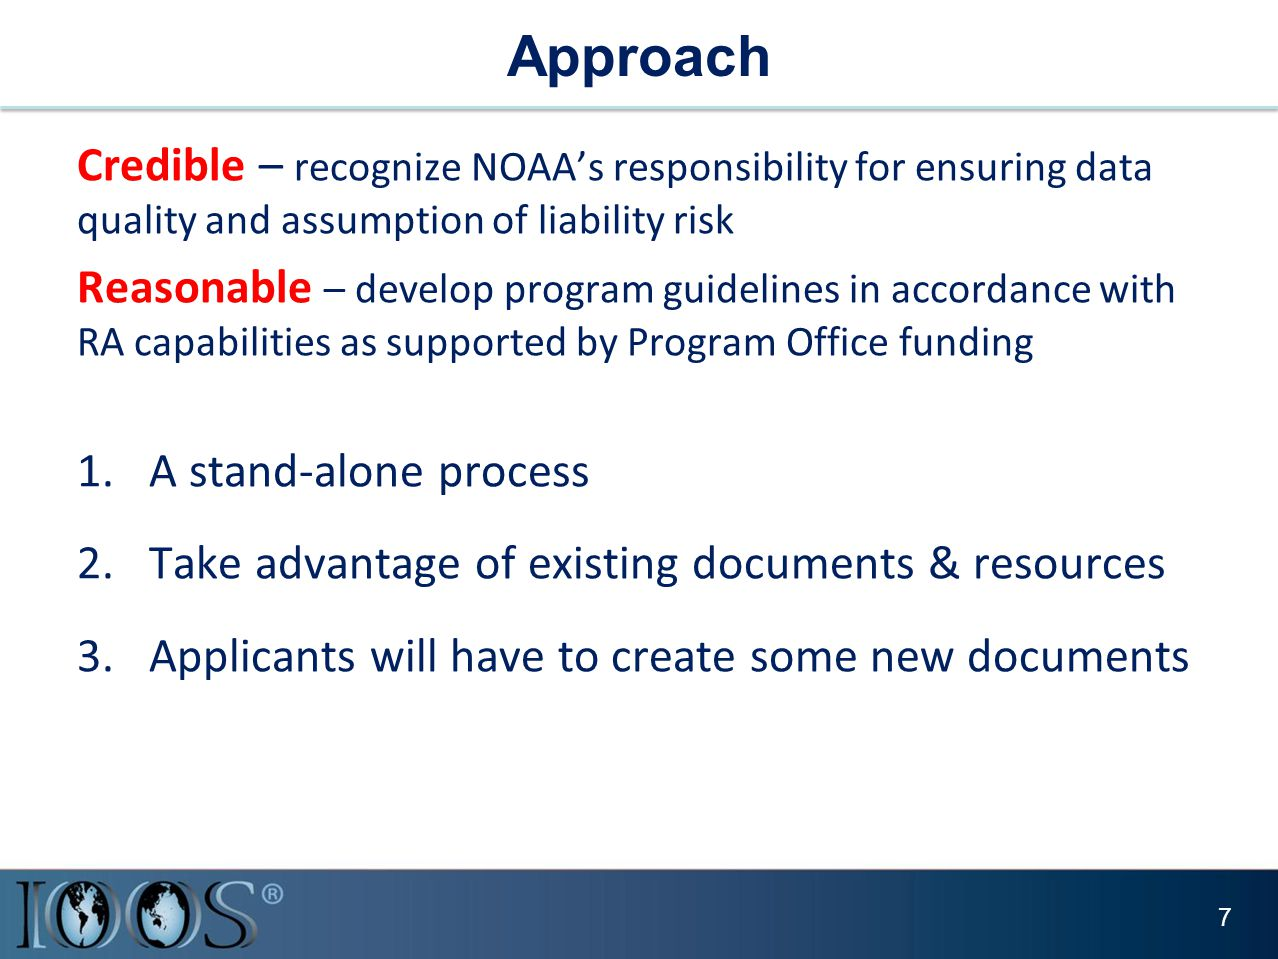 Approach Credible – recognize NOAA's responsibility for ensuring data quality and assumption of liability risk Reasonable – develop program guidelines in accordance with RA capabilities as supported by Program Office funding 1.A stand-alone process 2.Take advantage of existing documents & resources 3.Applicants will have to create some new documents 7